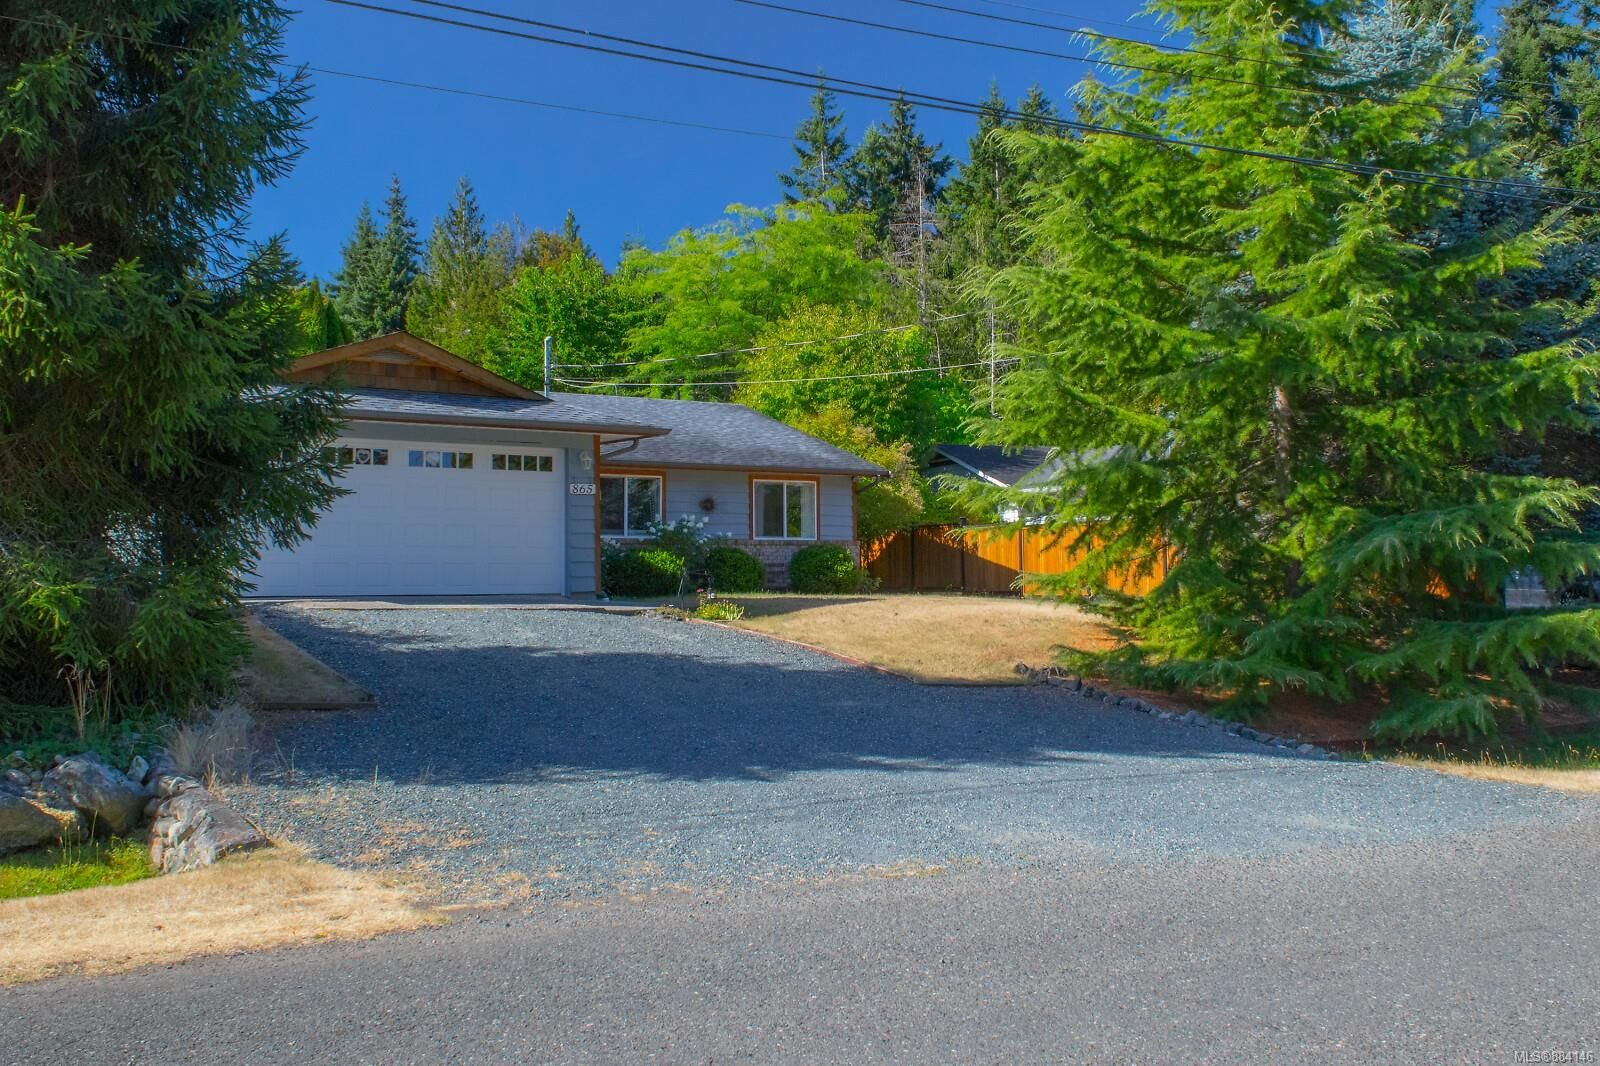 Main Photo: 865 Fishermans Cir in : PQ French Creek House for sale (Parksville/Qualicum)  : MLS®# 884146